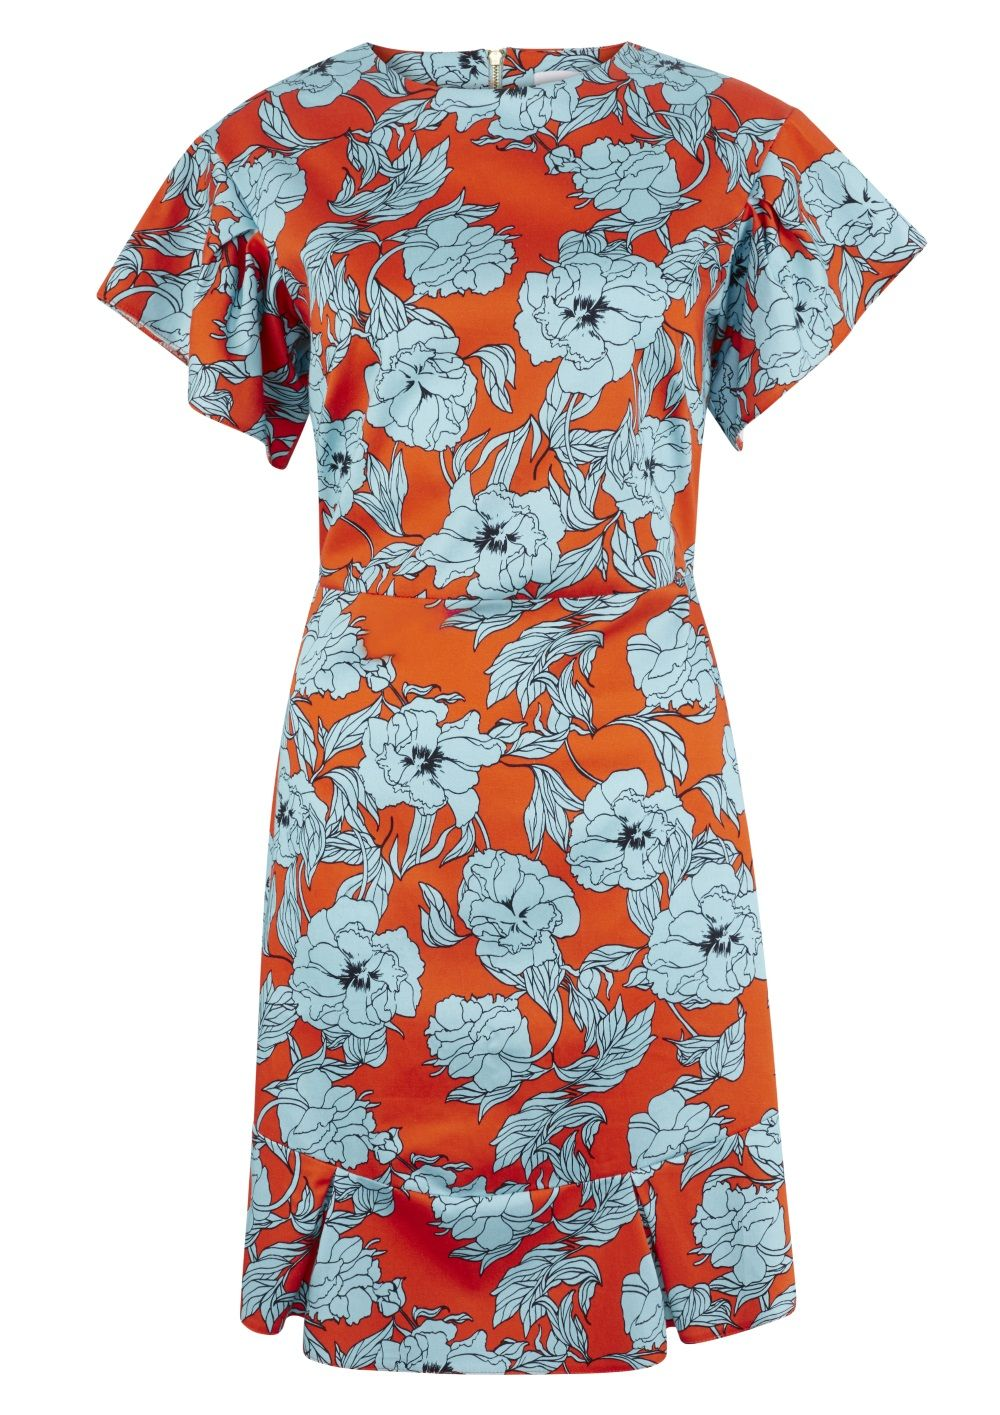 Closet London Orange Floral Frill Sleeve & Hem Dress, Best Summer Dresses